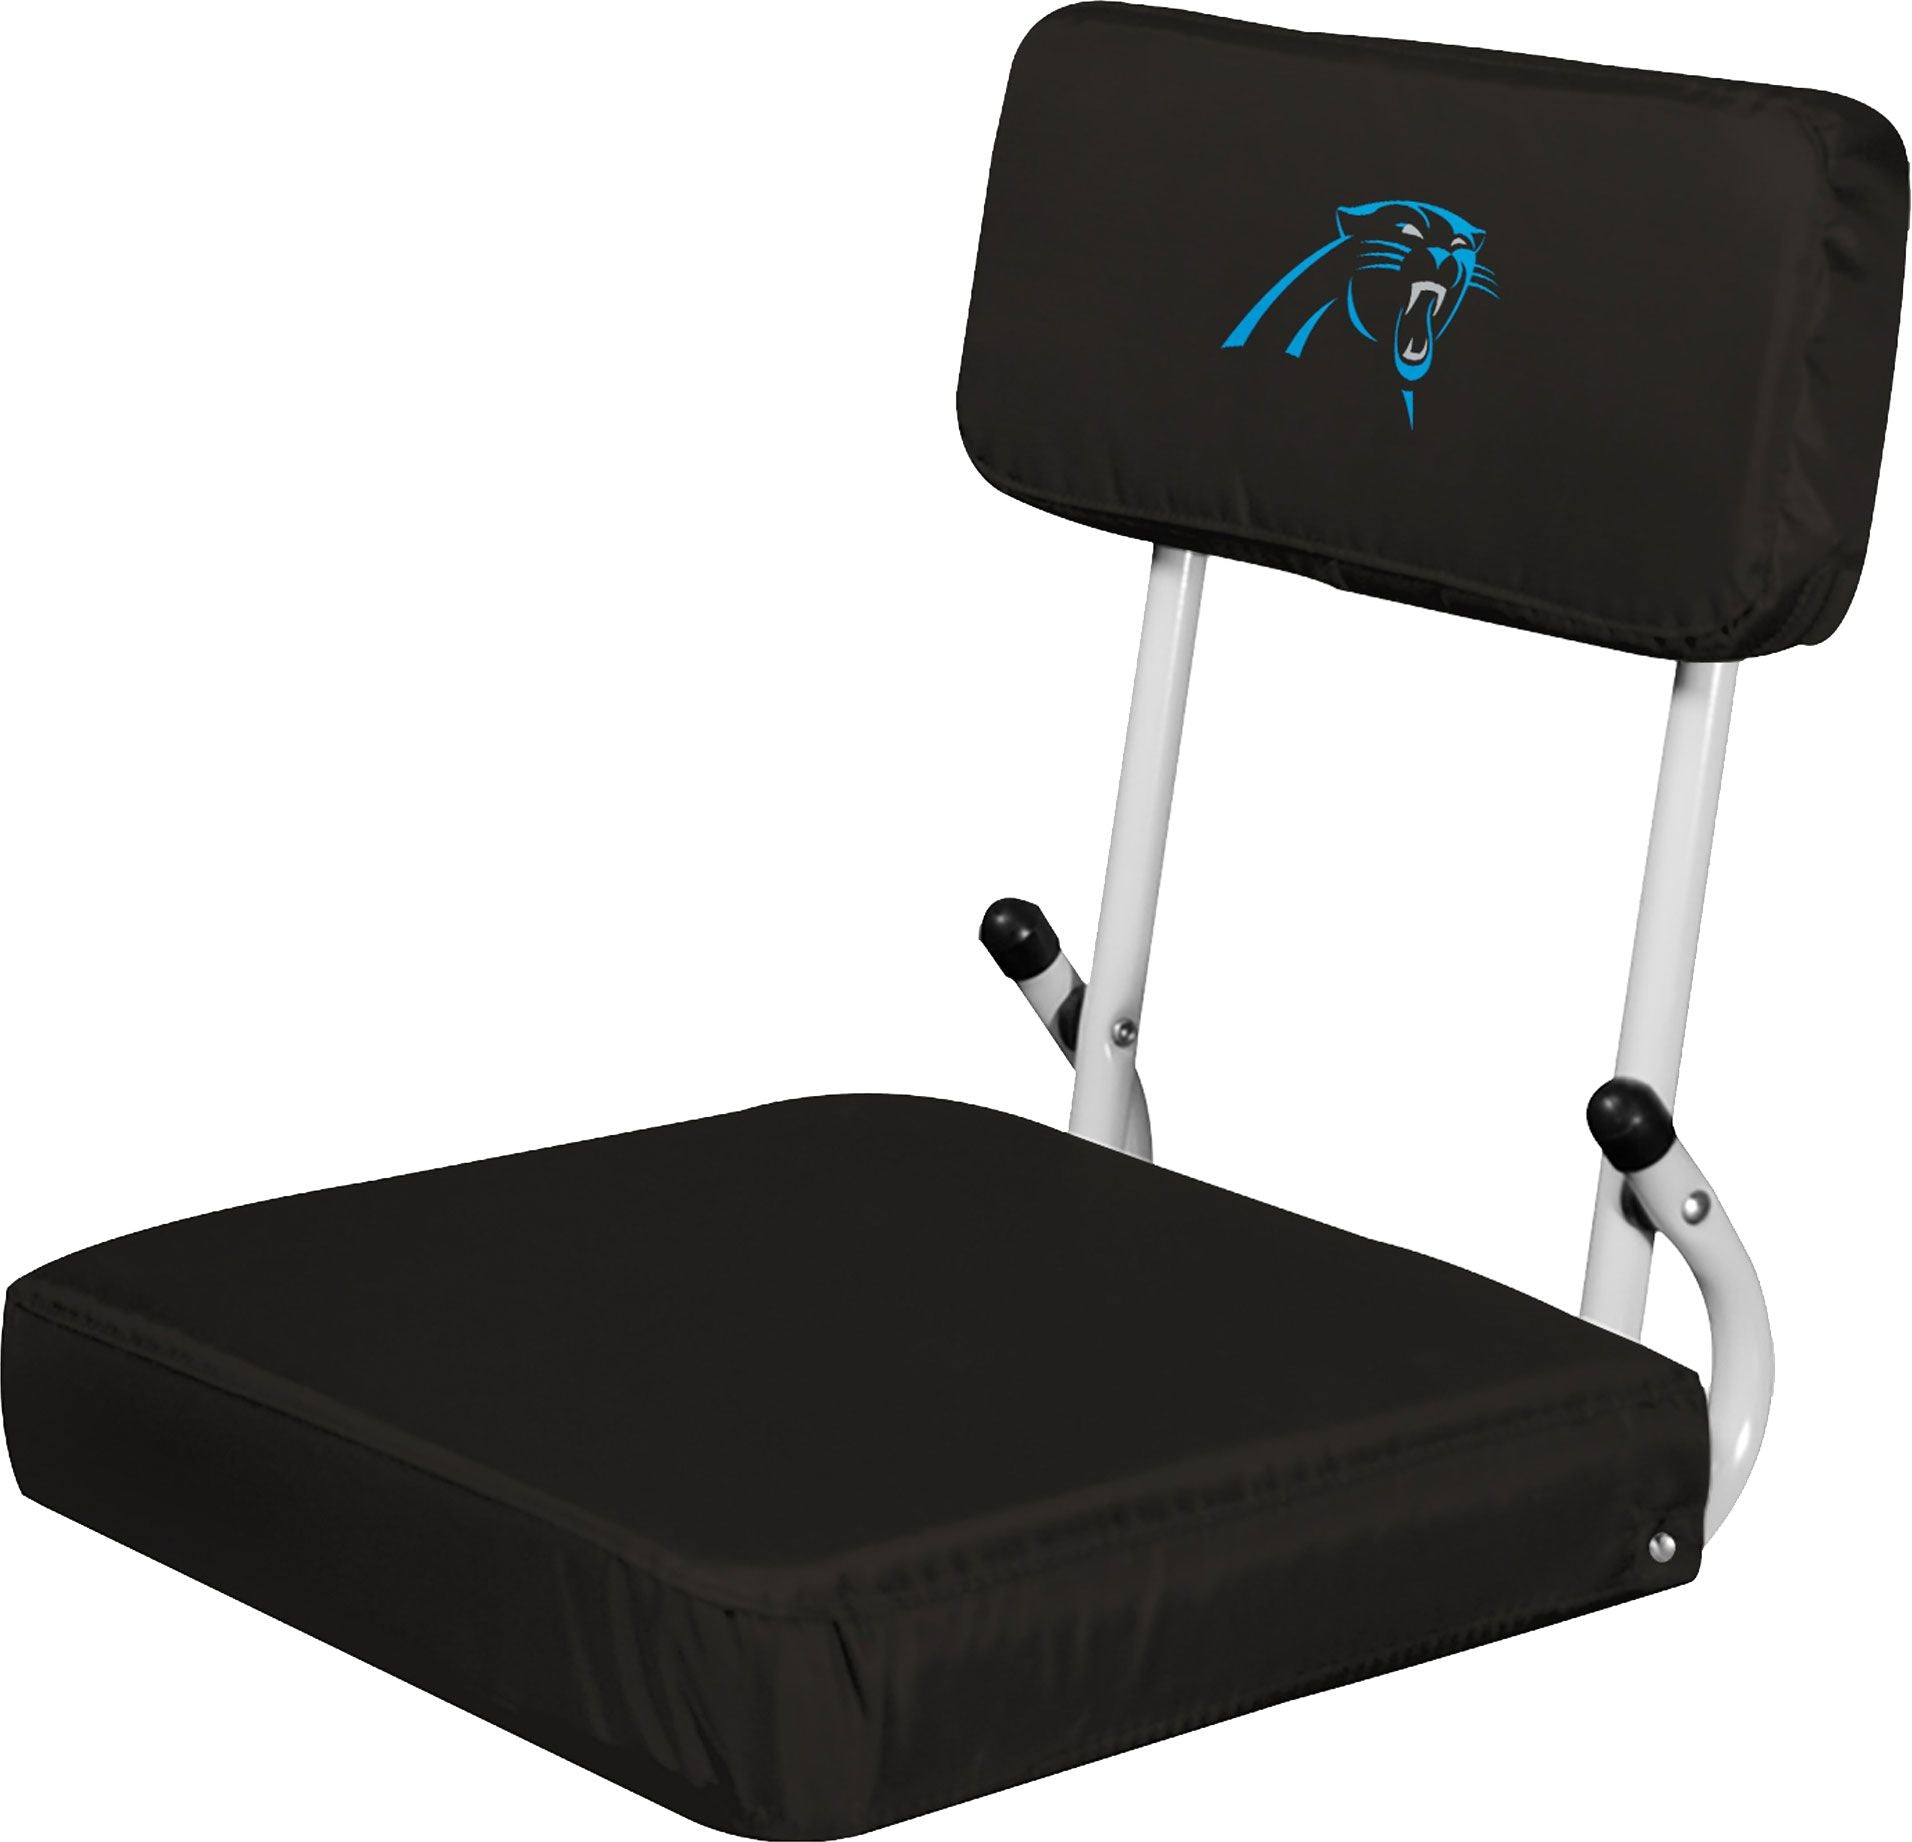 CAROLINA PANTHERS HARDBACK SEAT CAROLINA PANTHERS - AtlanticCoastSports